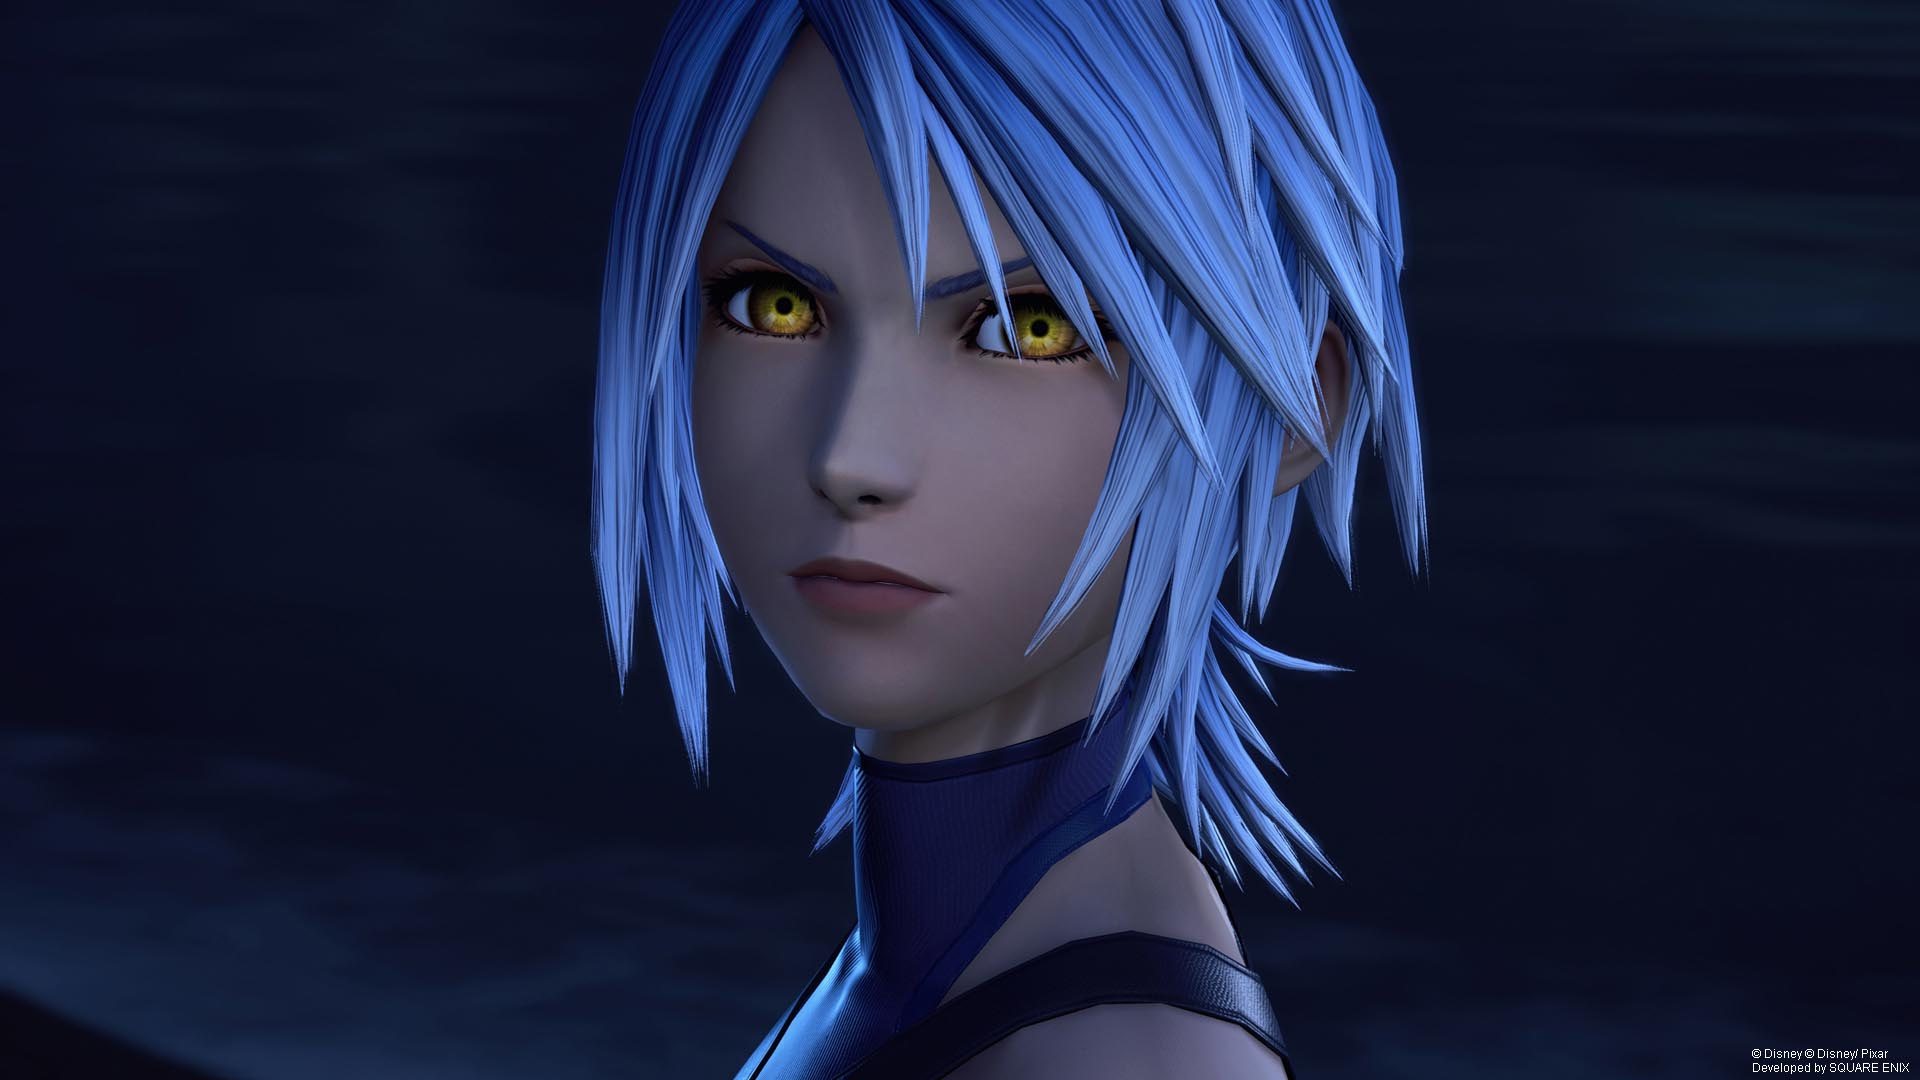 Kingdom Hearts Aqua seeker of darkness